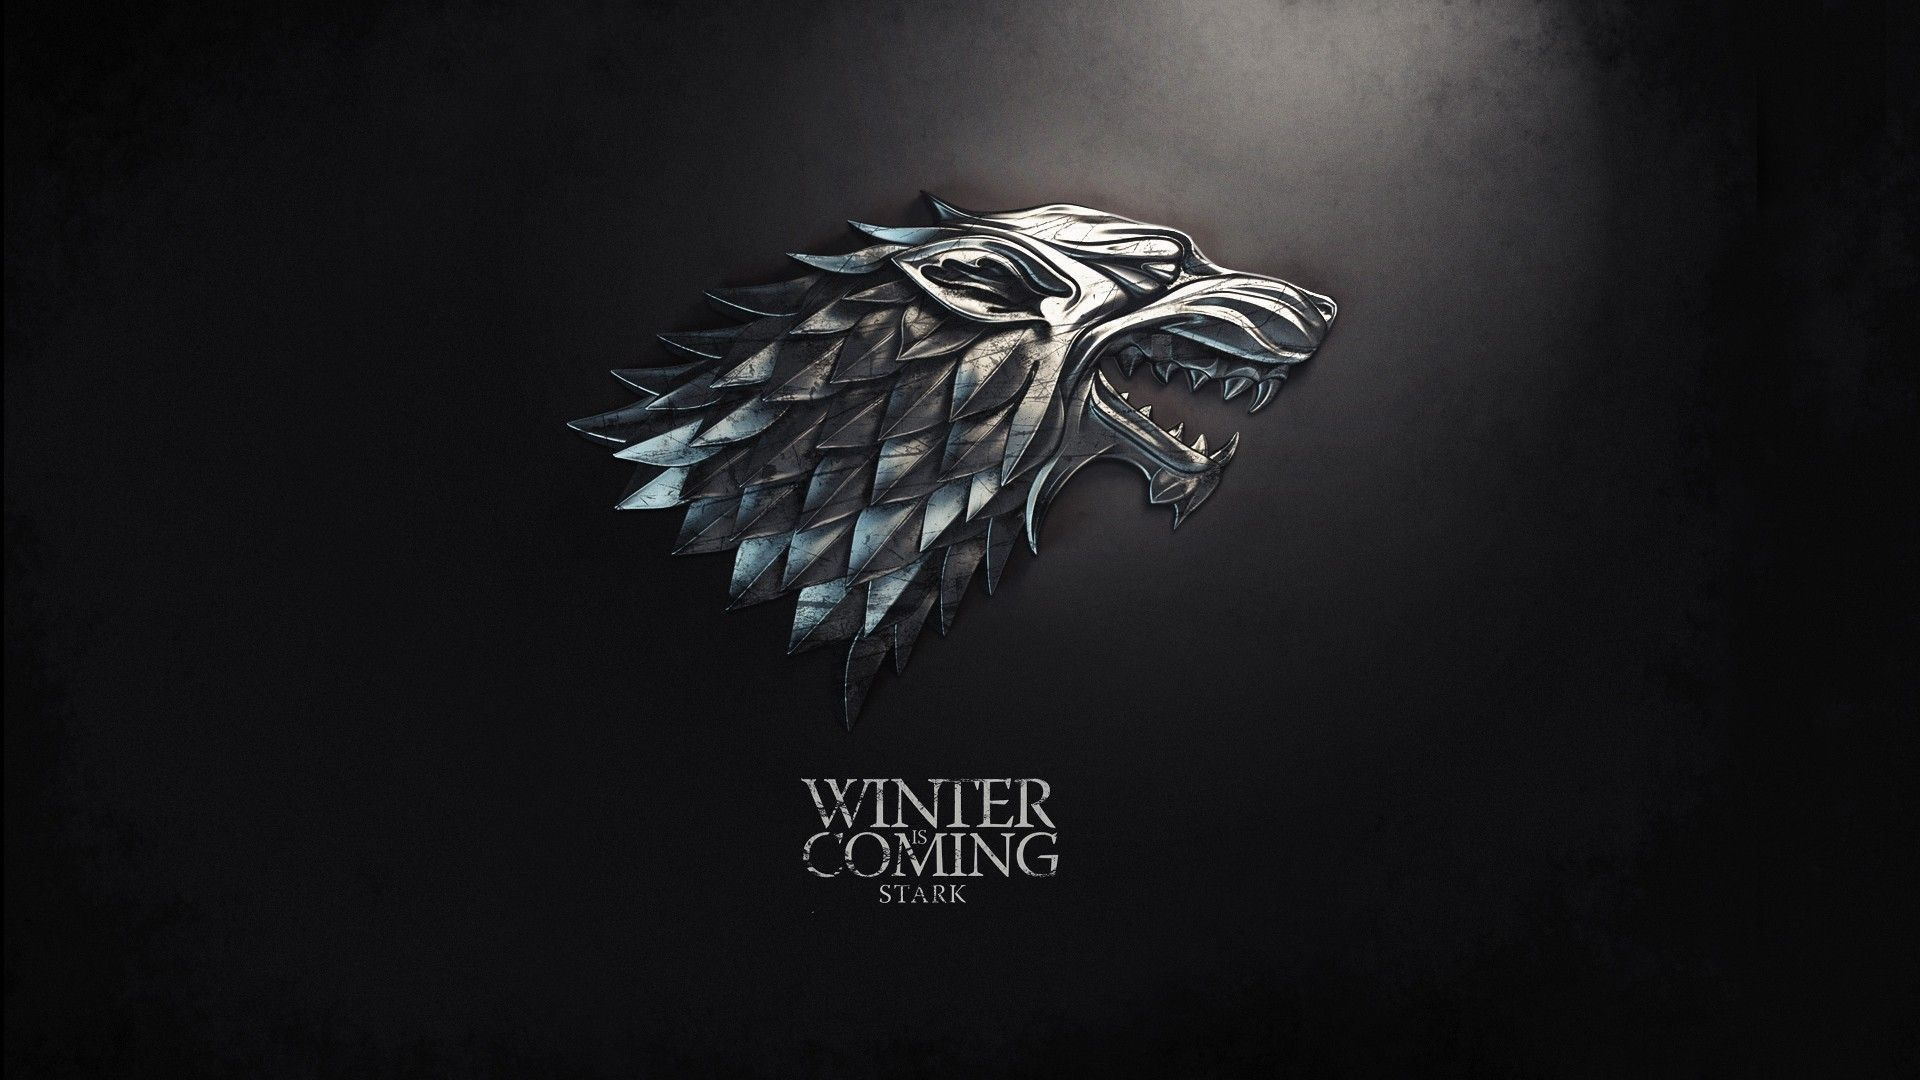 Game Of Thrones Wallpapers Winter Is Coming Wallpaper Game Of Thrones Game Of Thrones Tv